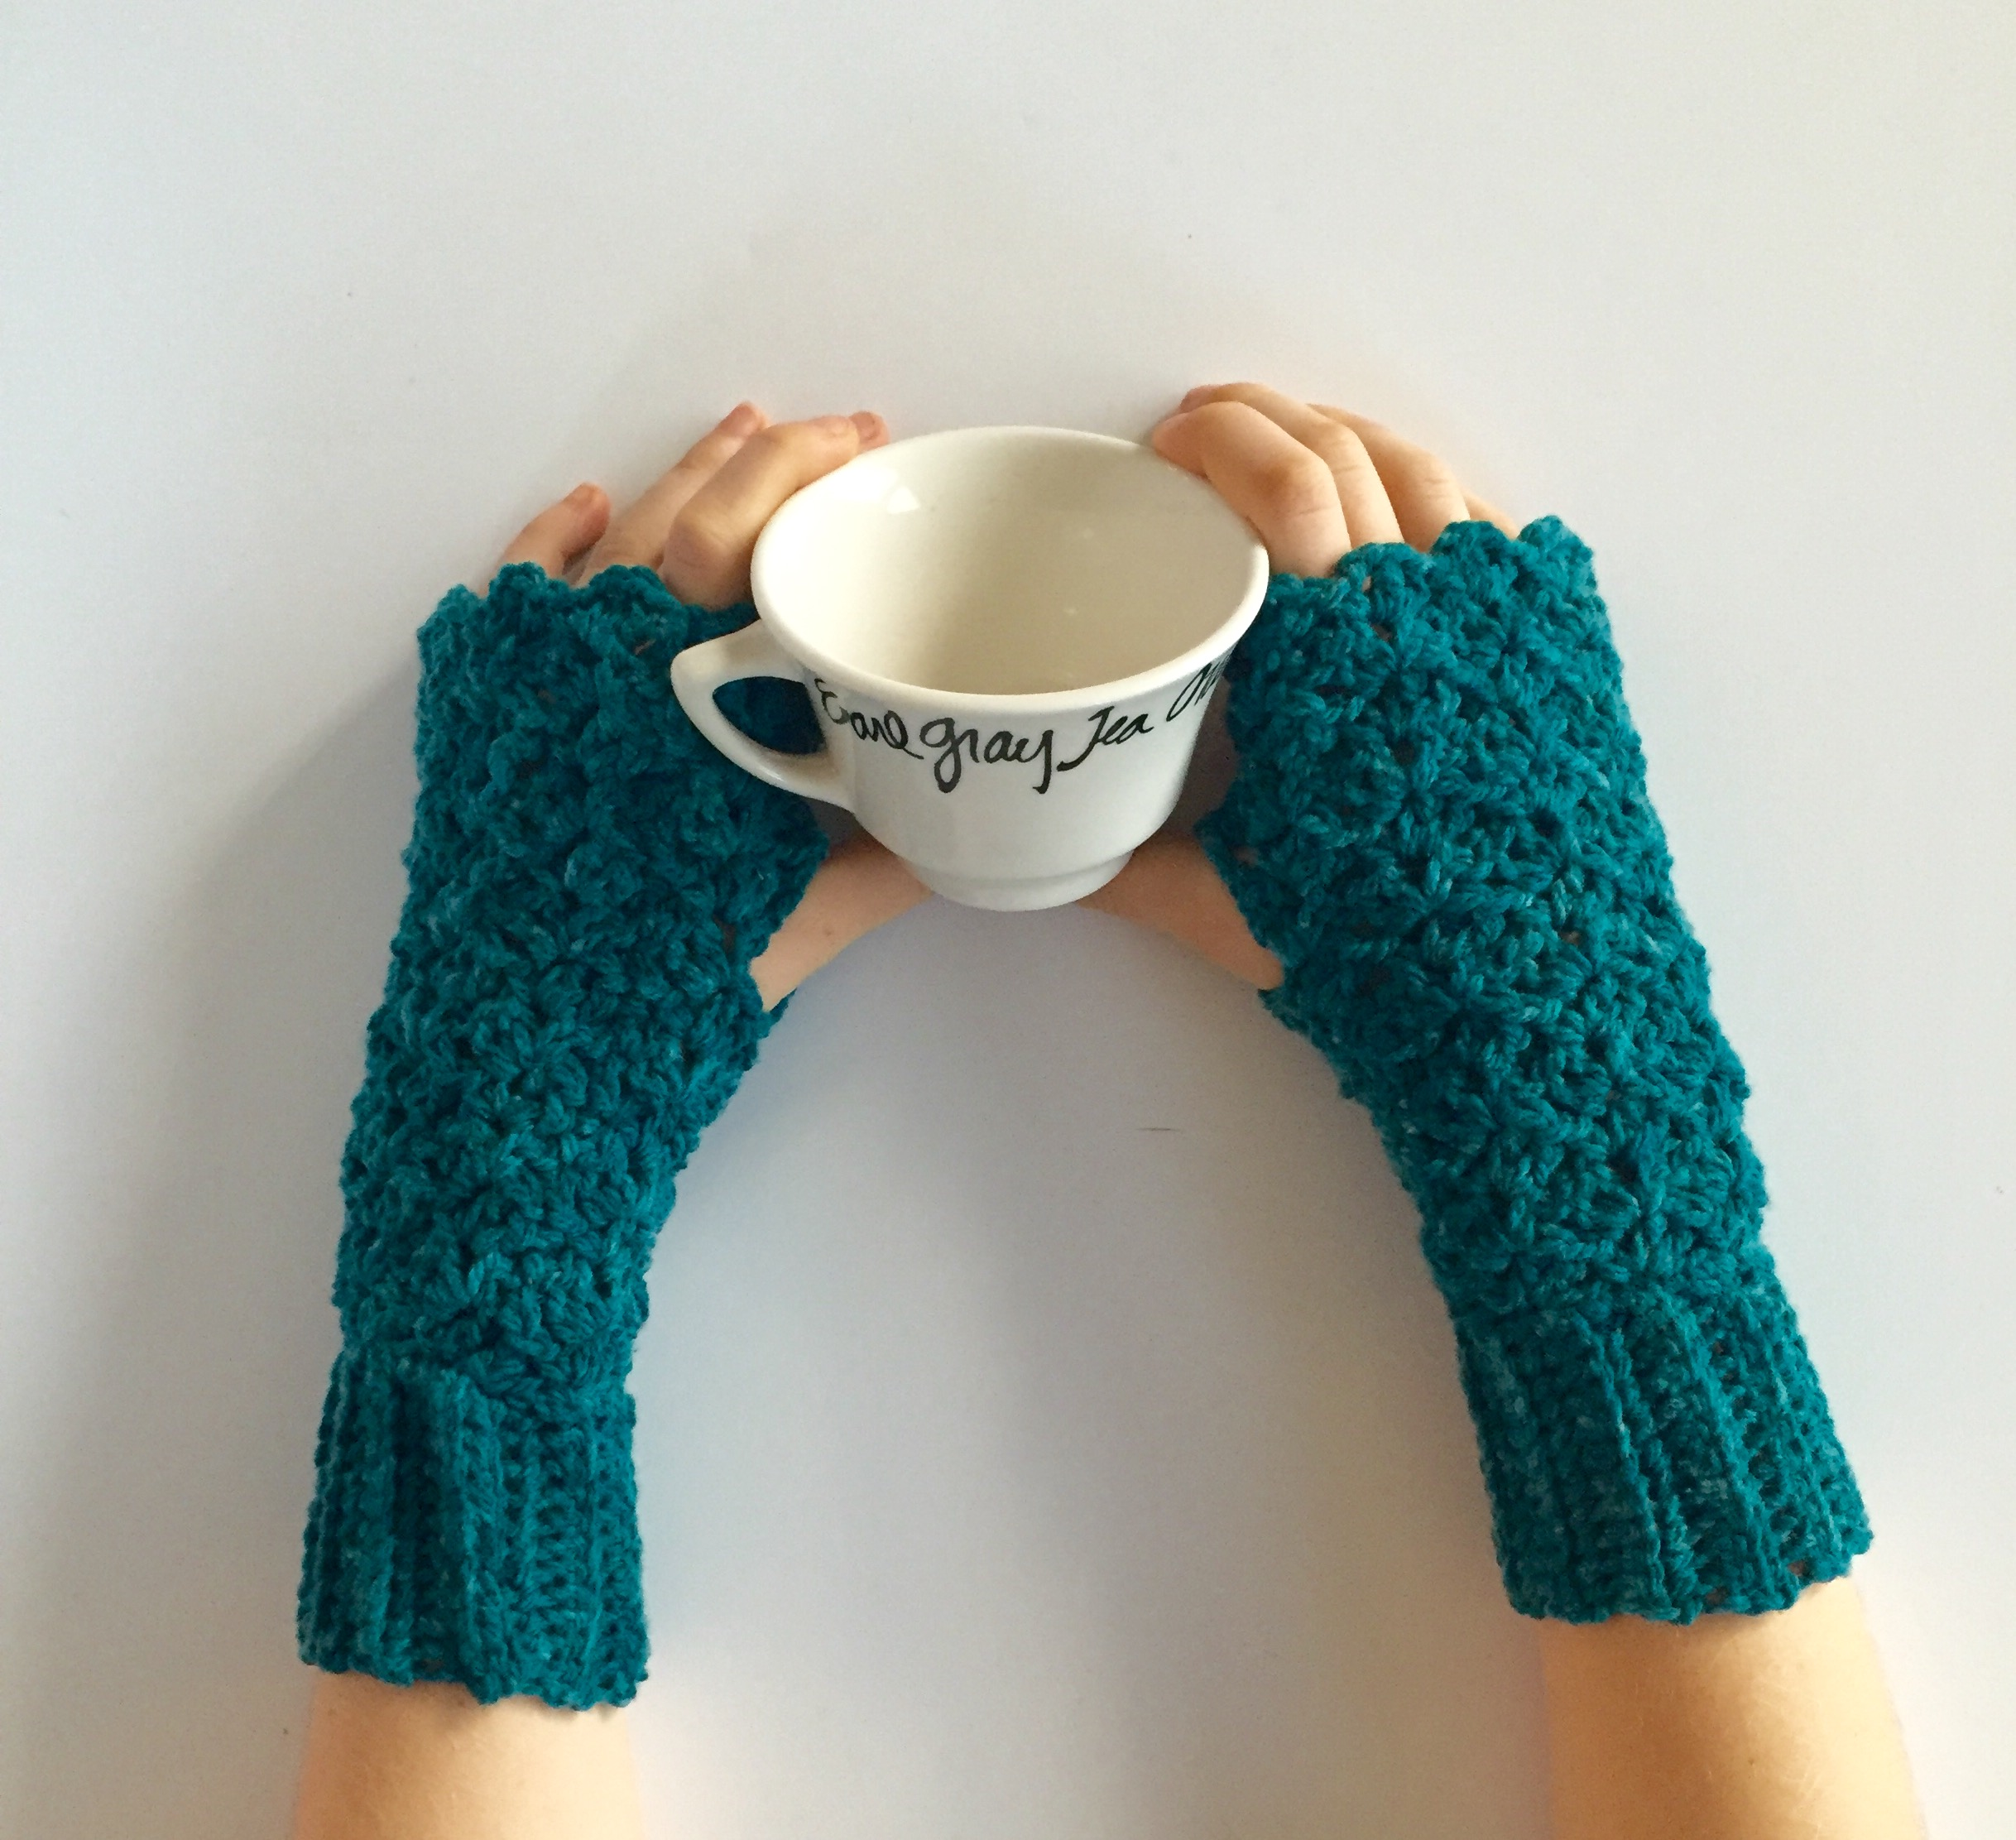 Queens lace fingerless gloves in merino wool teal